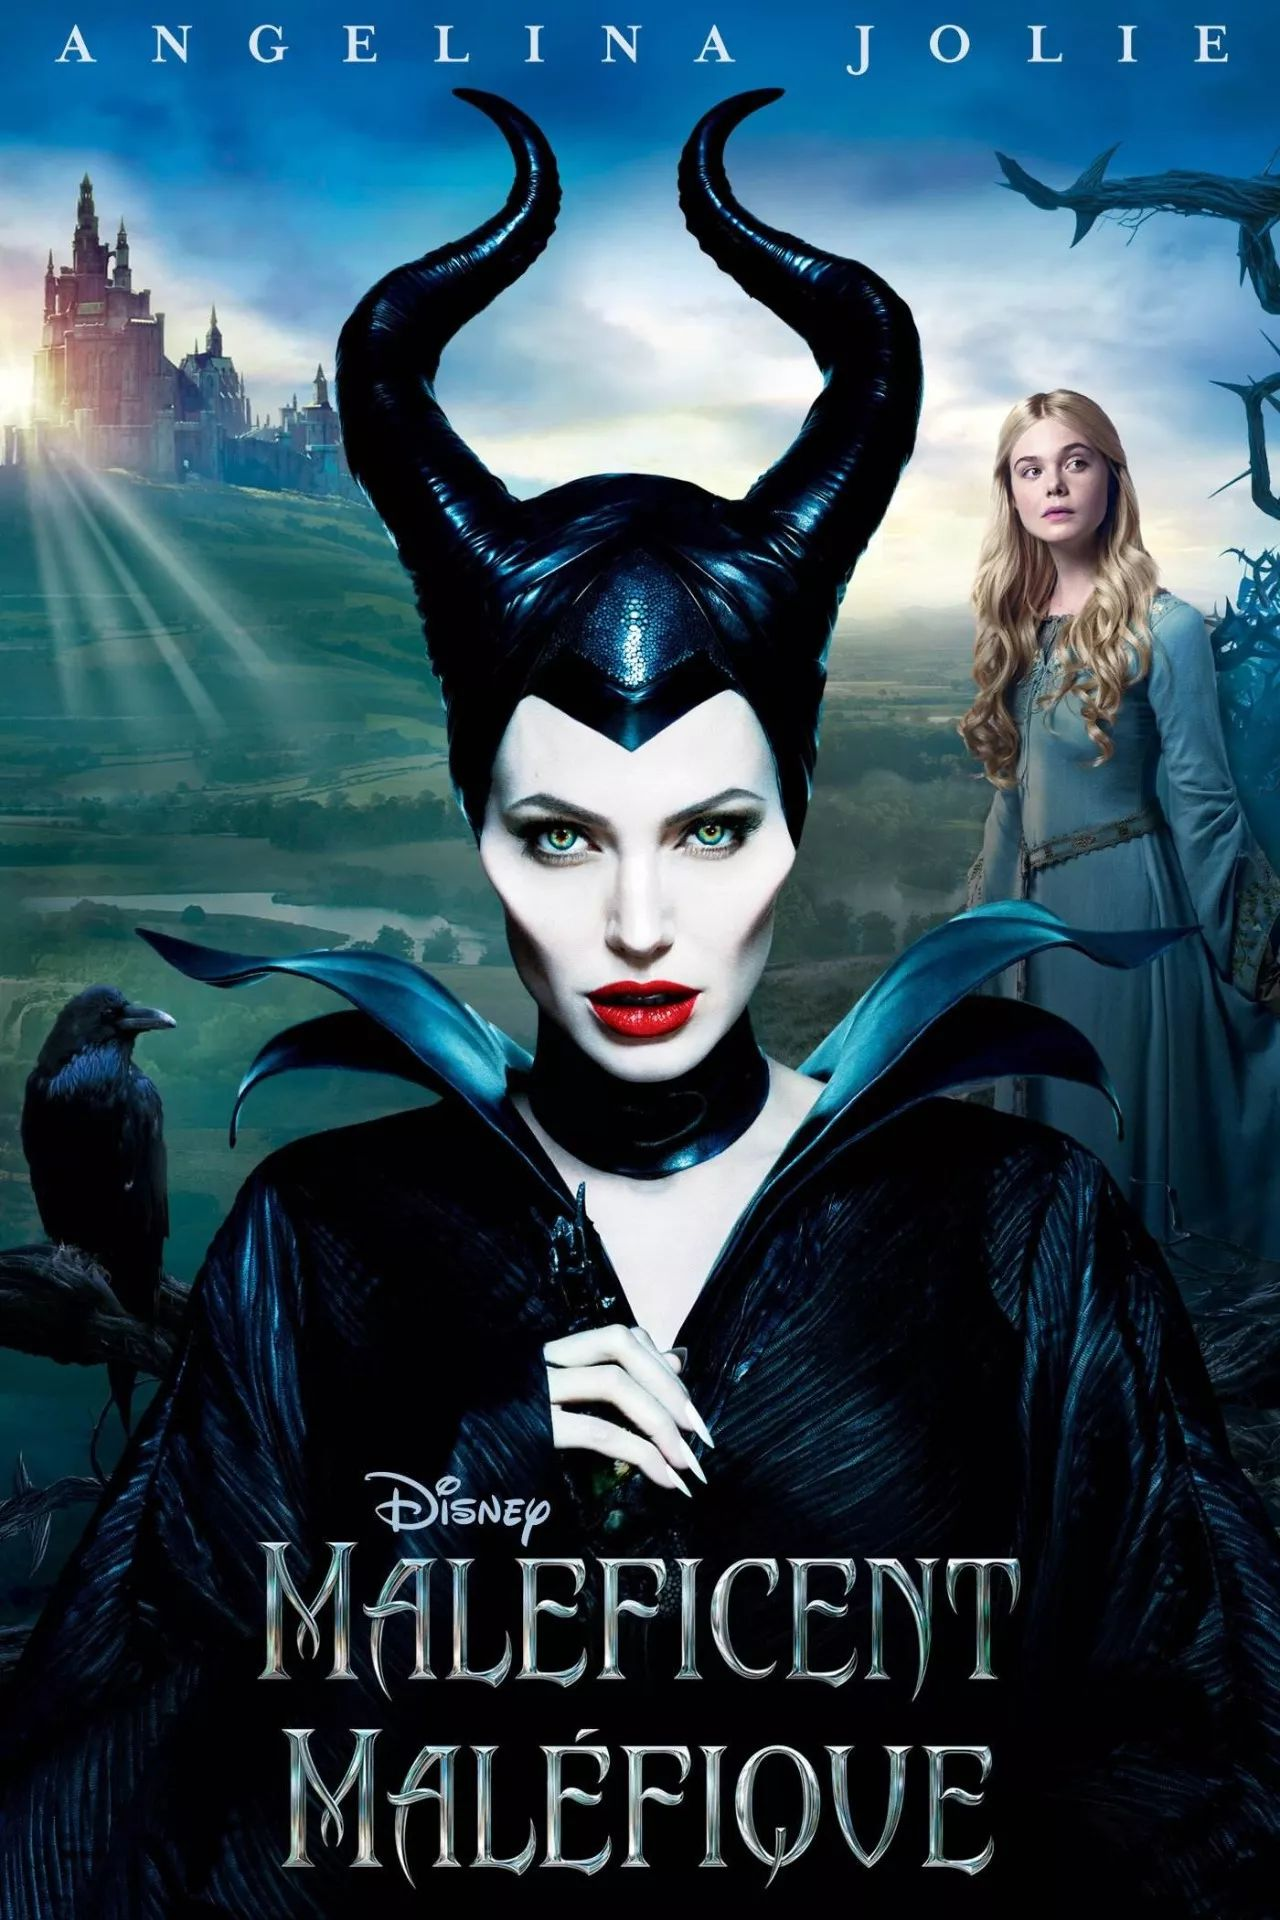 Maleficent Full Movie Free Online